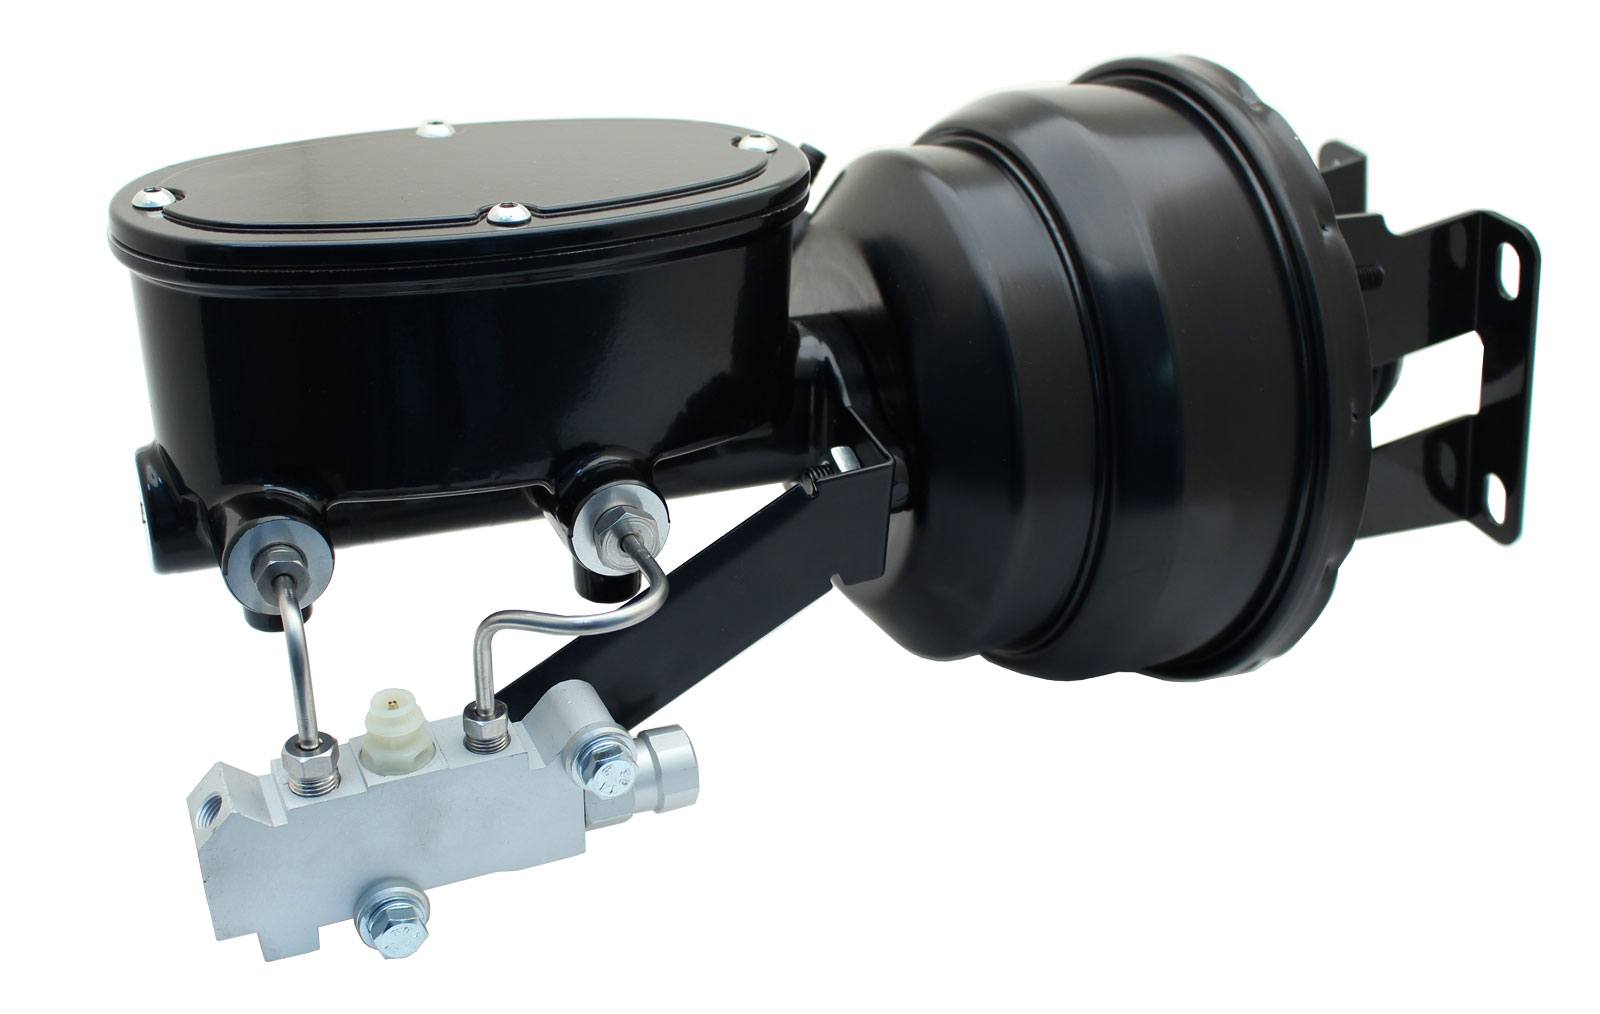 1959-1964 GM Full Size (Impala, Bel Air) 8 Dual Powder Coated Black Booster Conversion Kit W/ Wilwood Oval Left Mount Disc/ Disc Proportioning Valve Kit